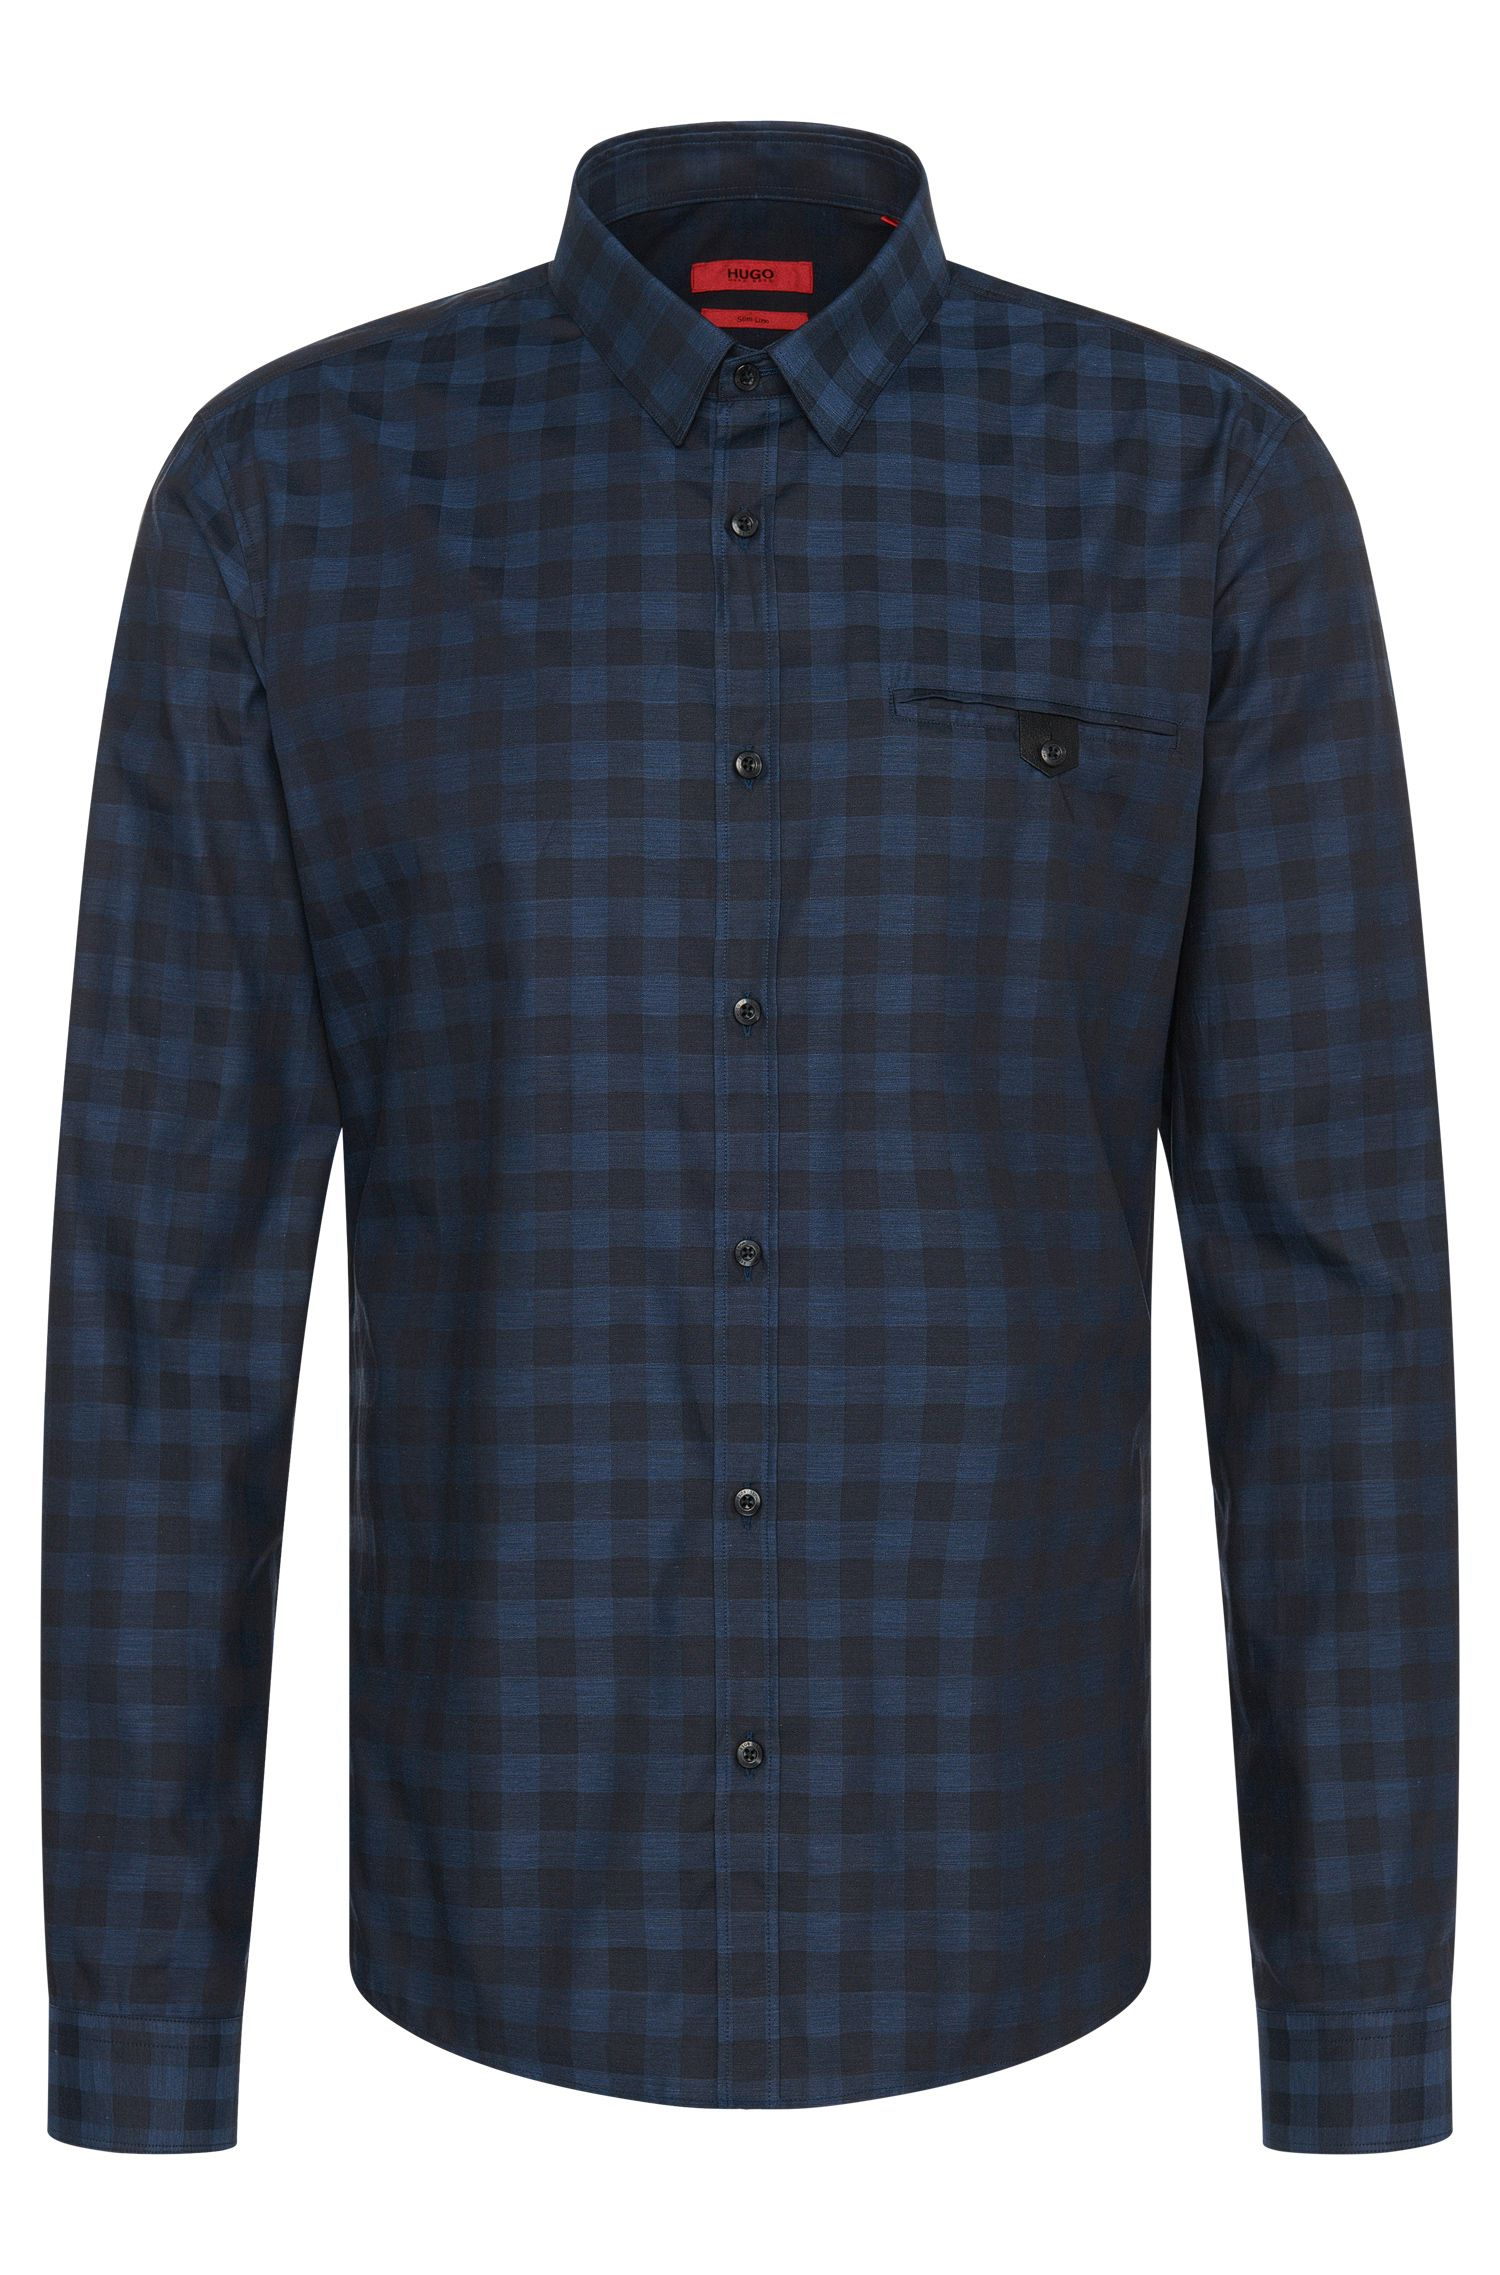 'Ewaldo' | Slim Fit, Cotton Melange Gingham Button Down Shirt